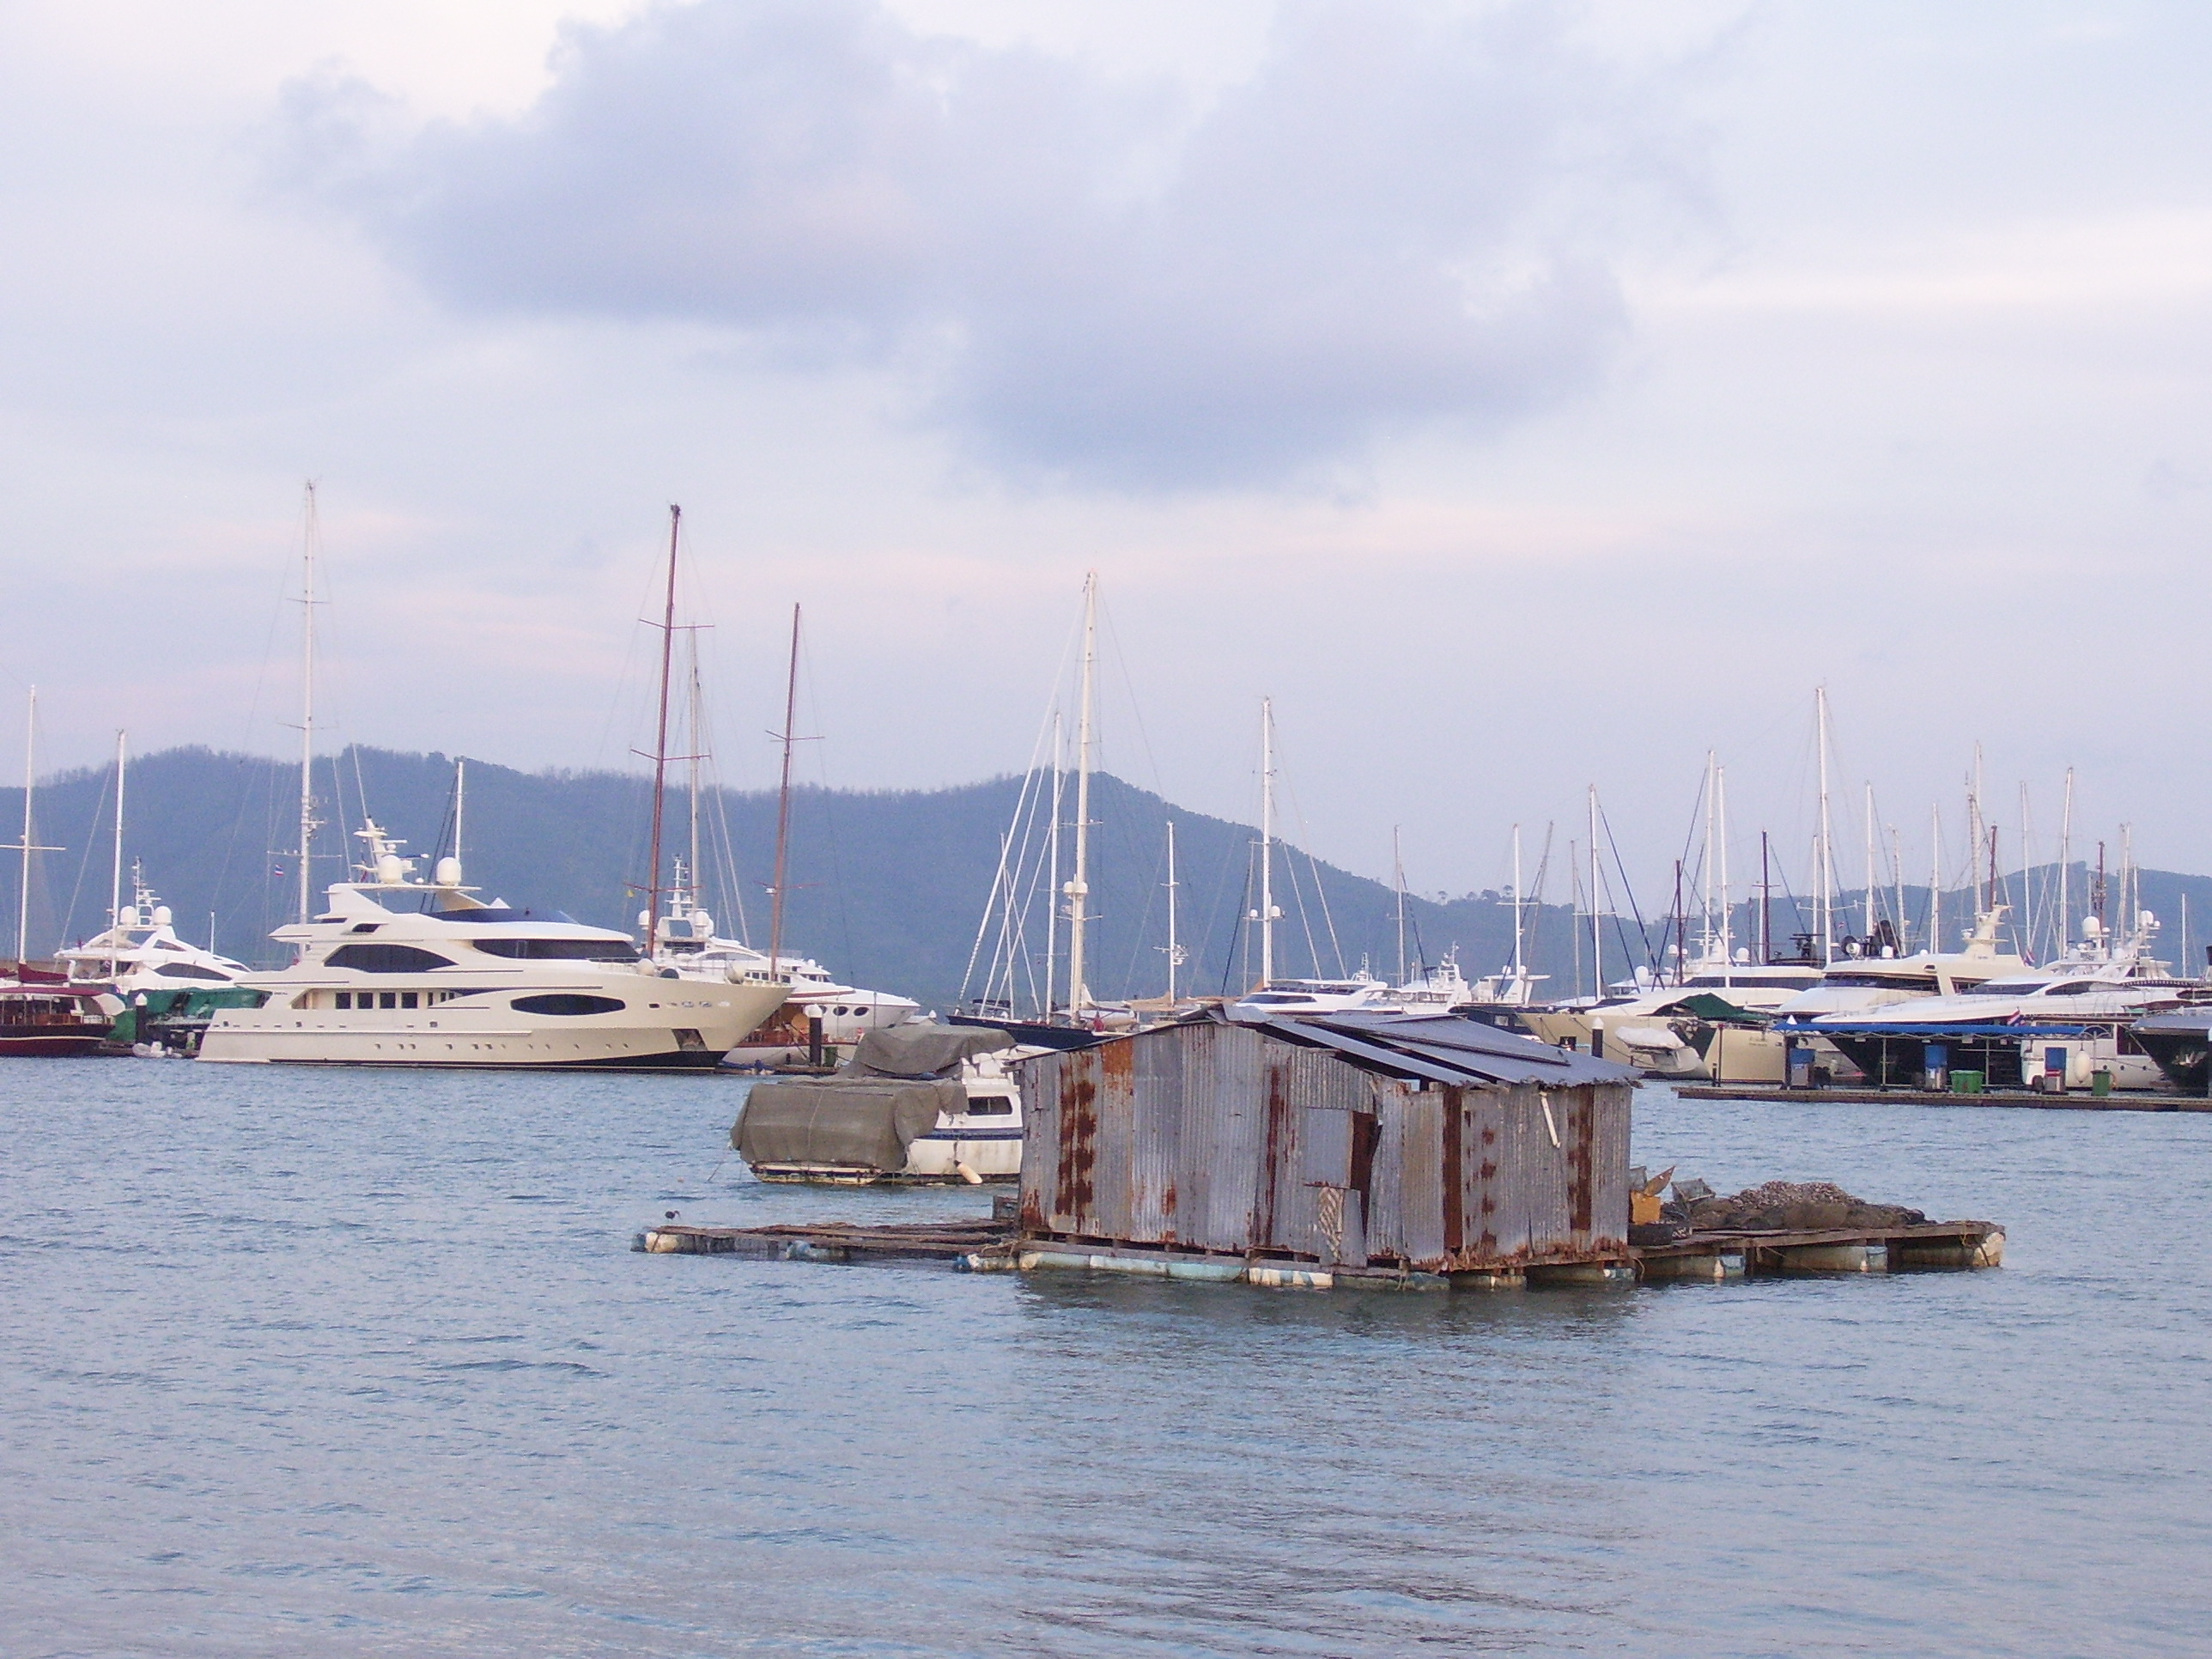 Travel in Thailand: Yacht Haven was our base for exploring Phang Nga Bay